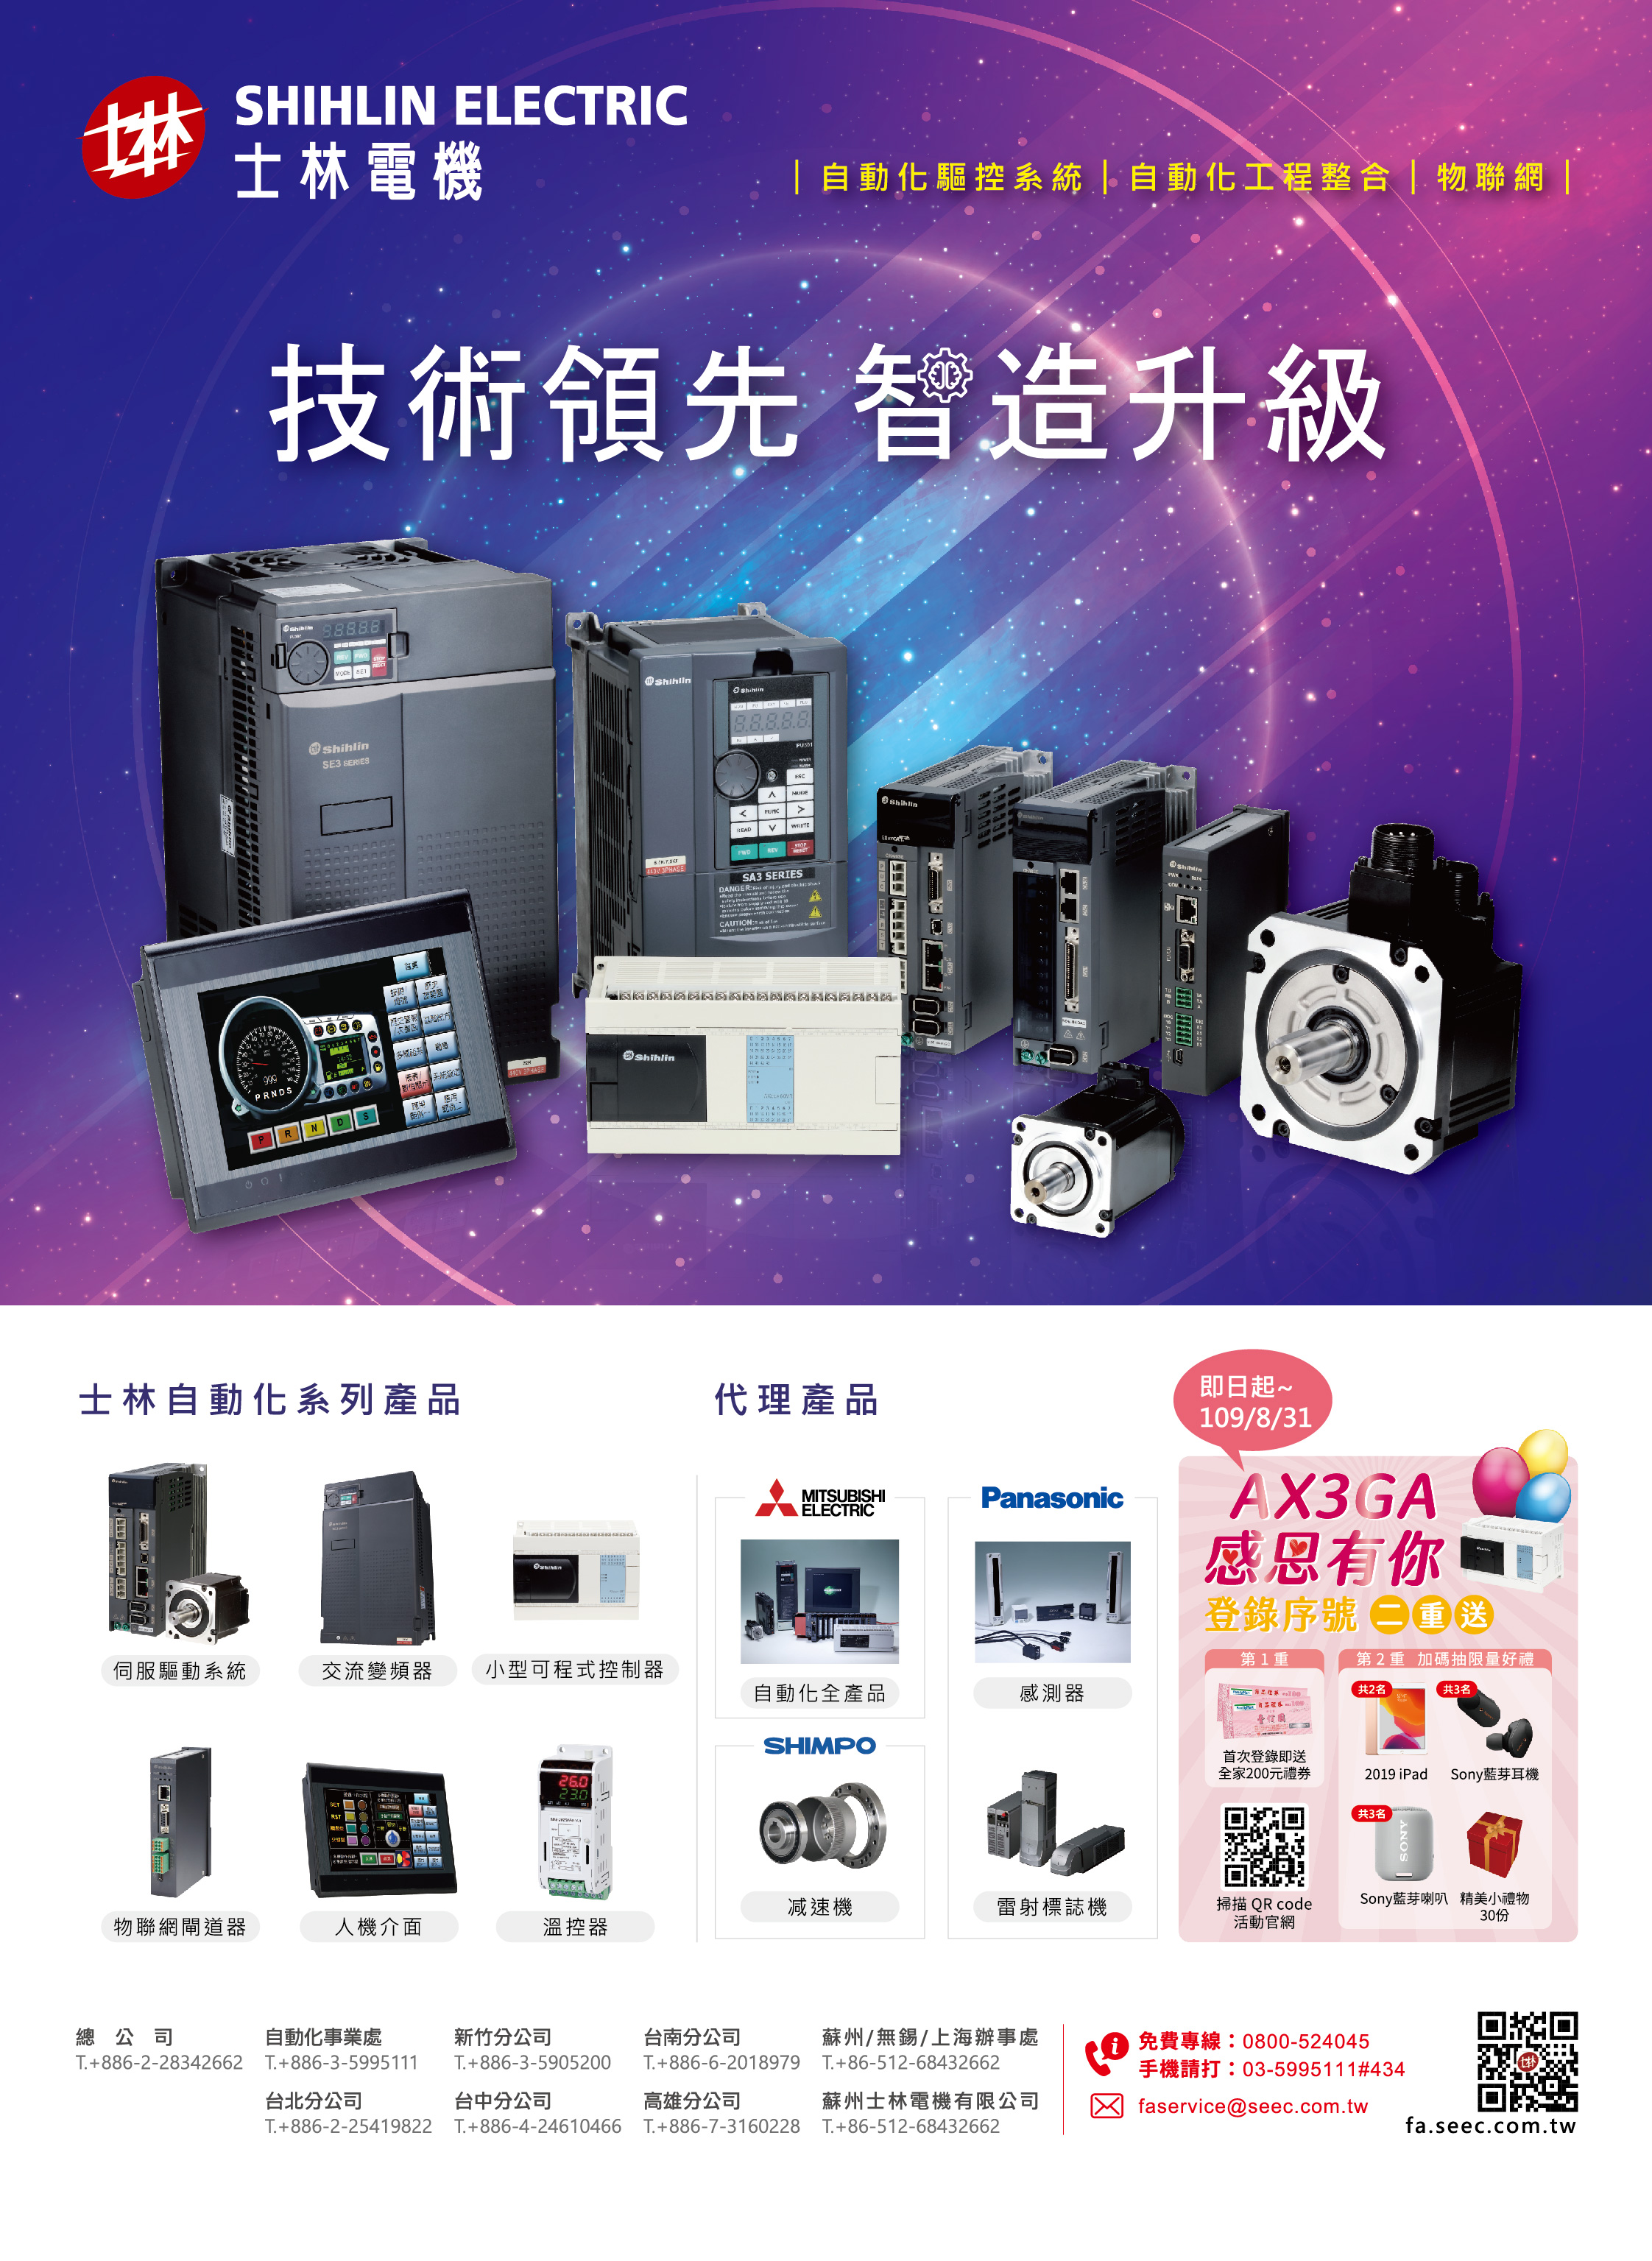 SHIHLIN ELECTRIC & ENGINEERING CORPORATION